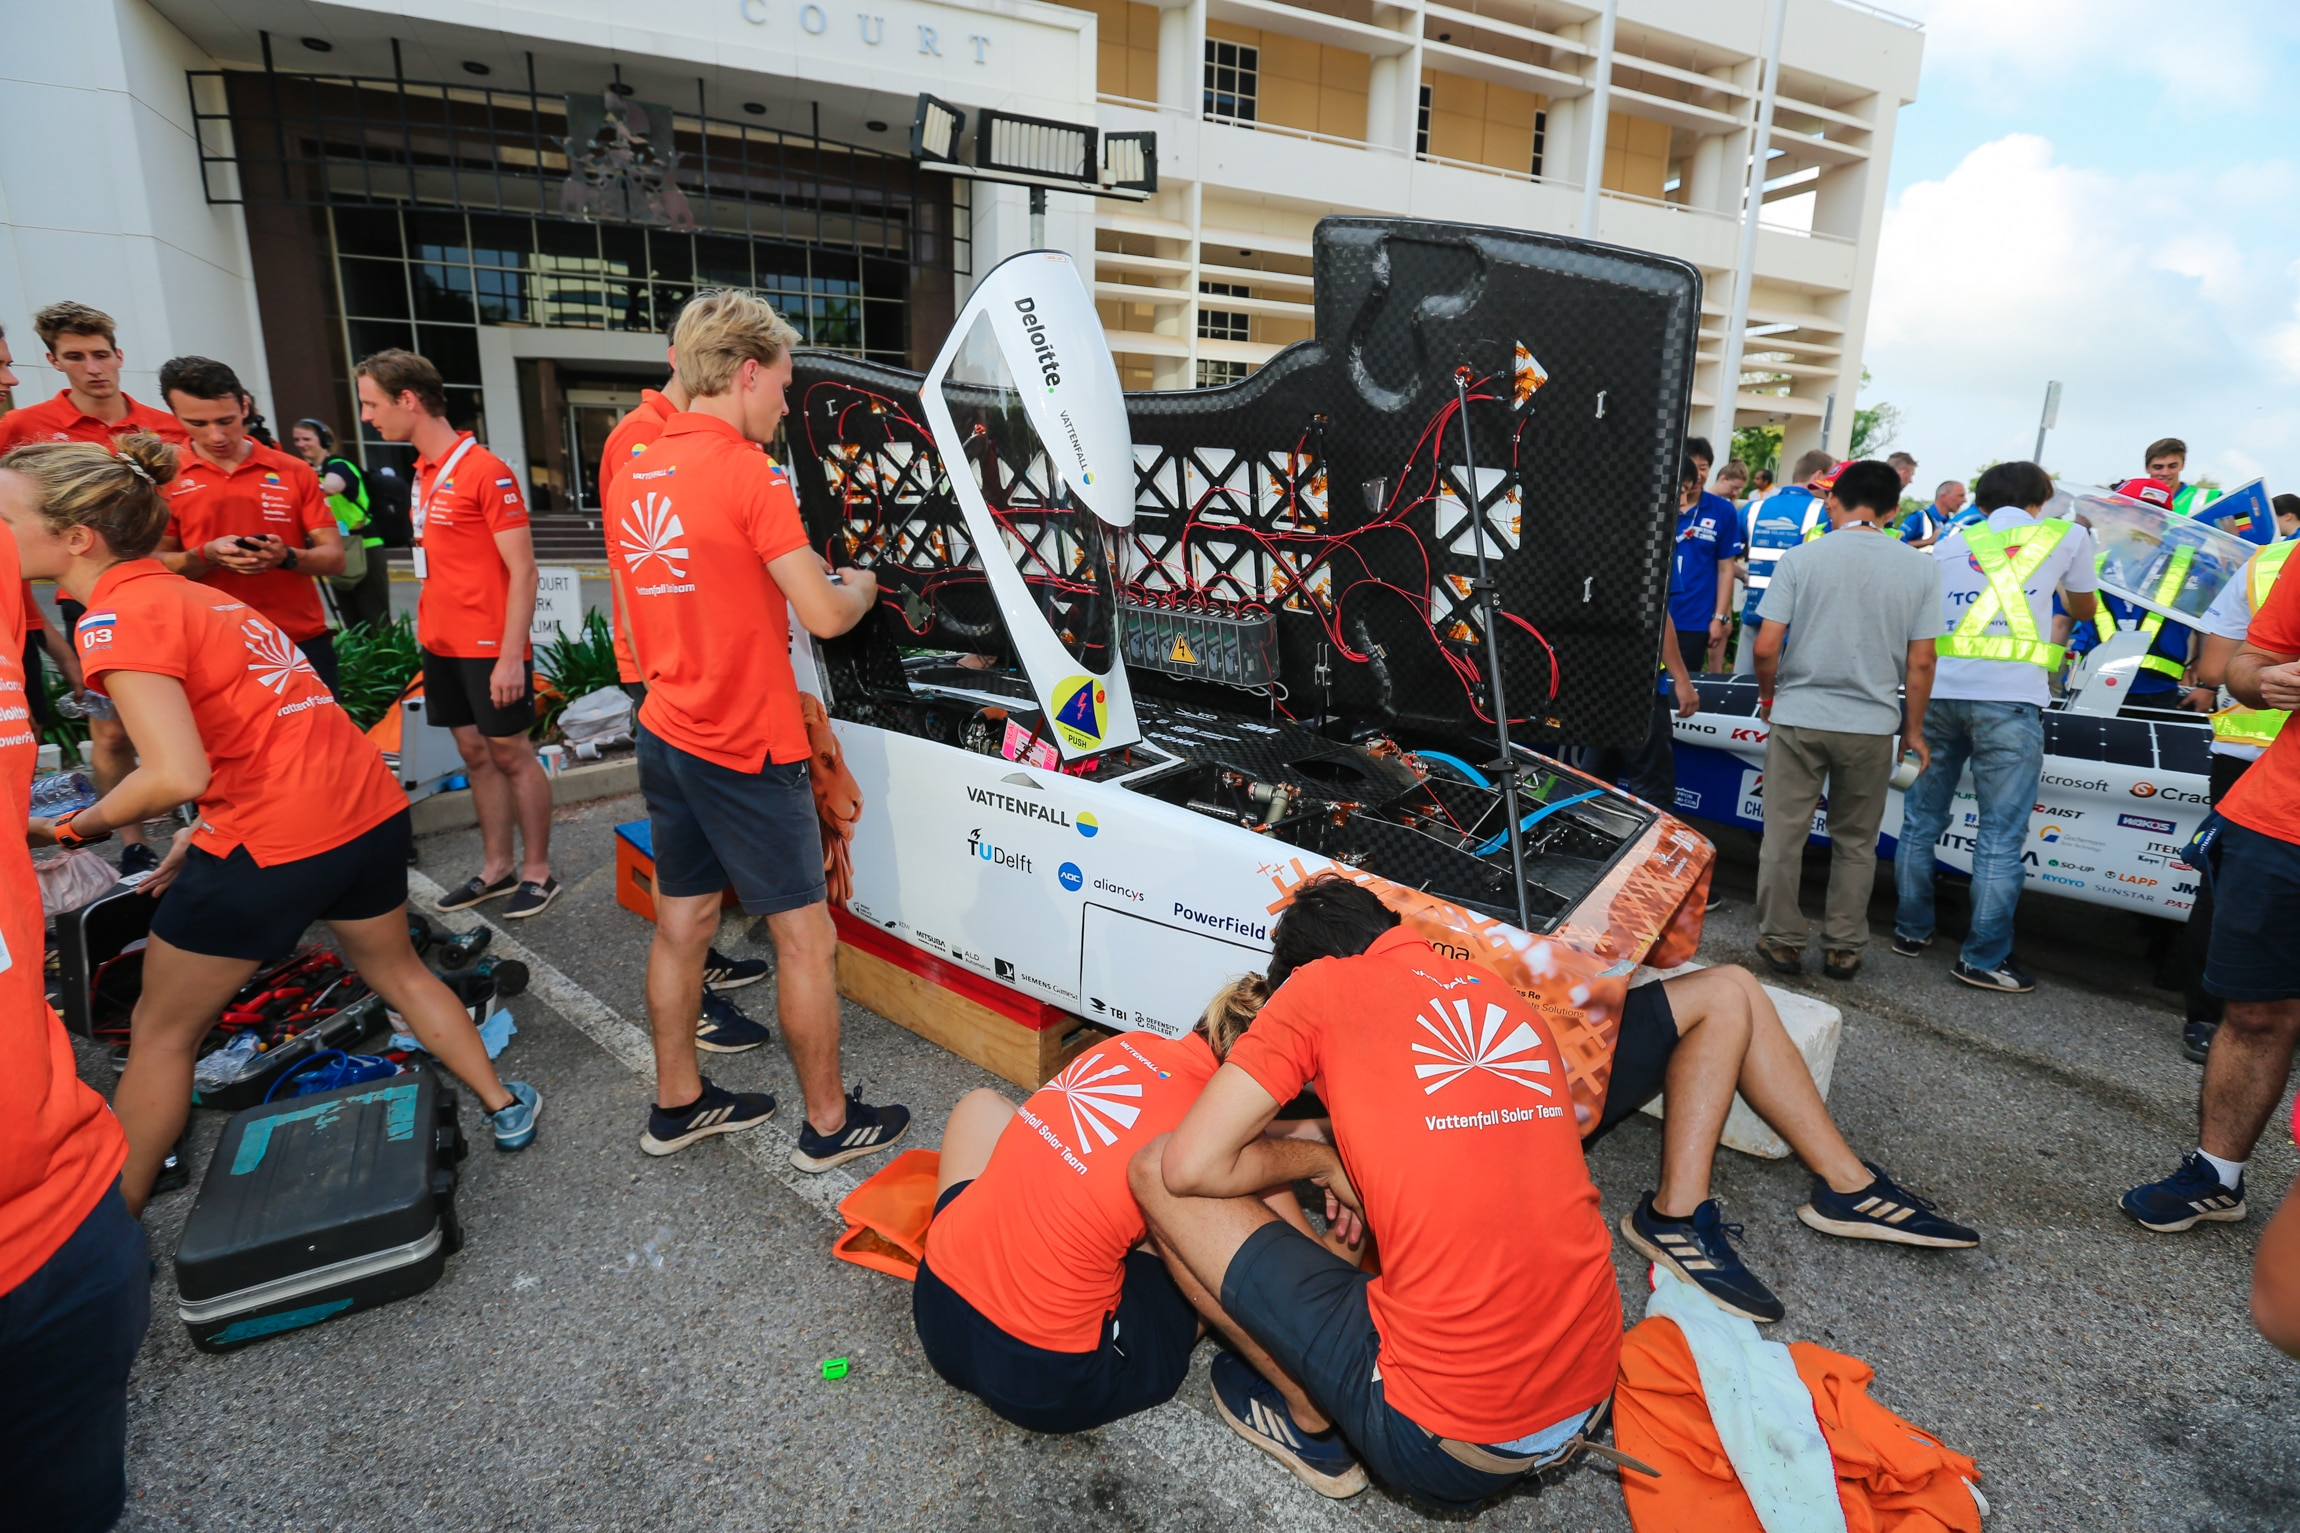 The Vattenfall Solar team is seen at the start line of the 2019 World Solar Challenge at State Square in Darwin.